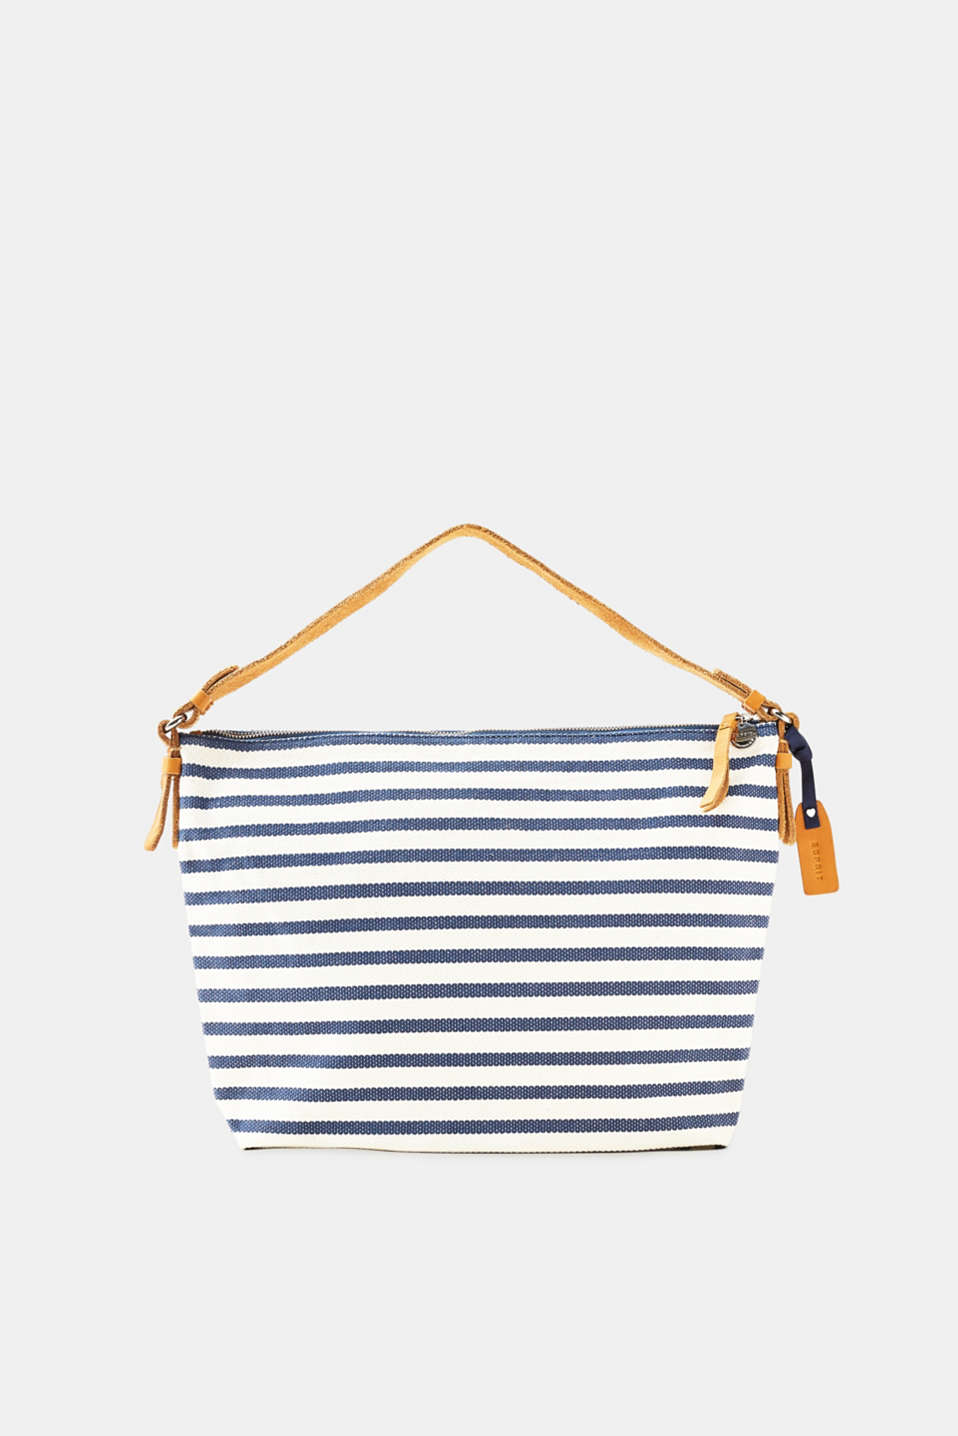 Hobo bag in coarse cotton canvas is the perfect nautical accessory for your summer look.